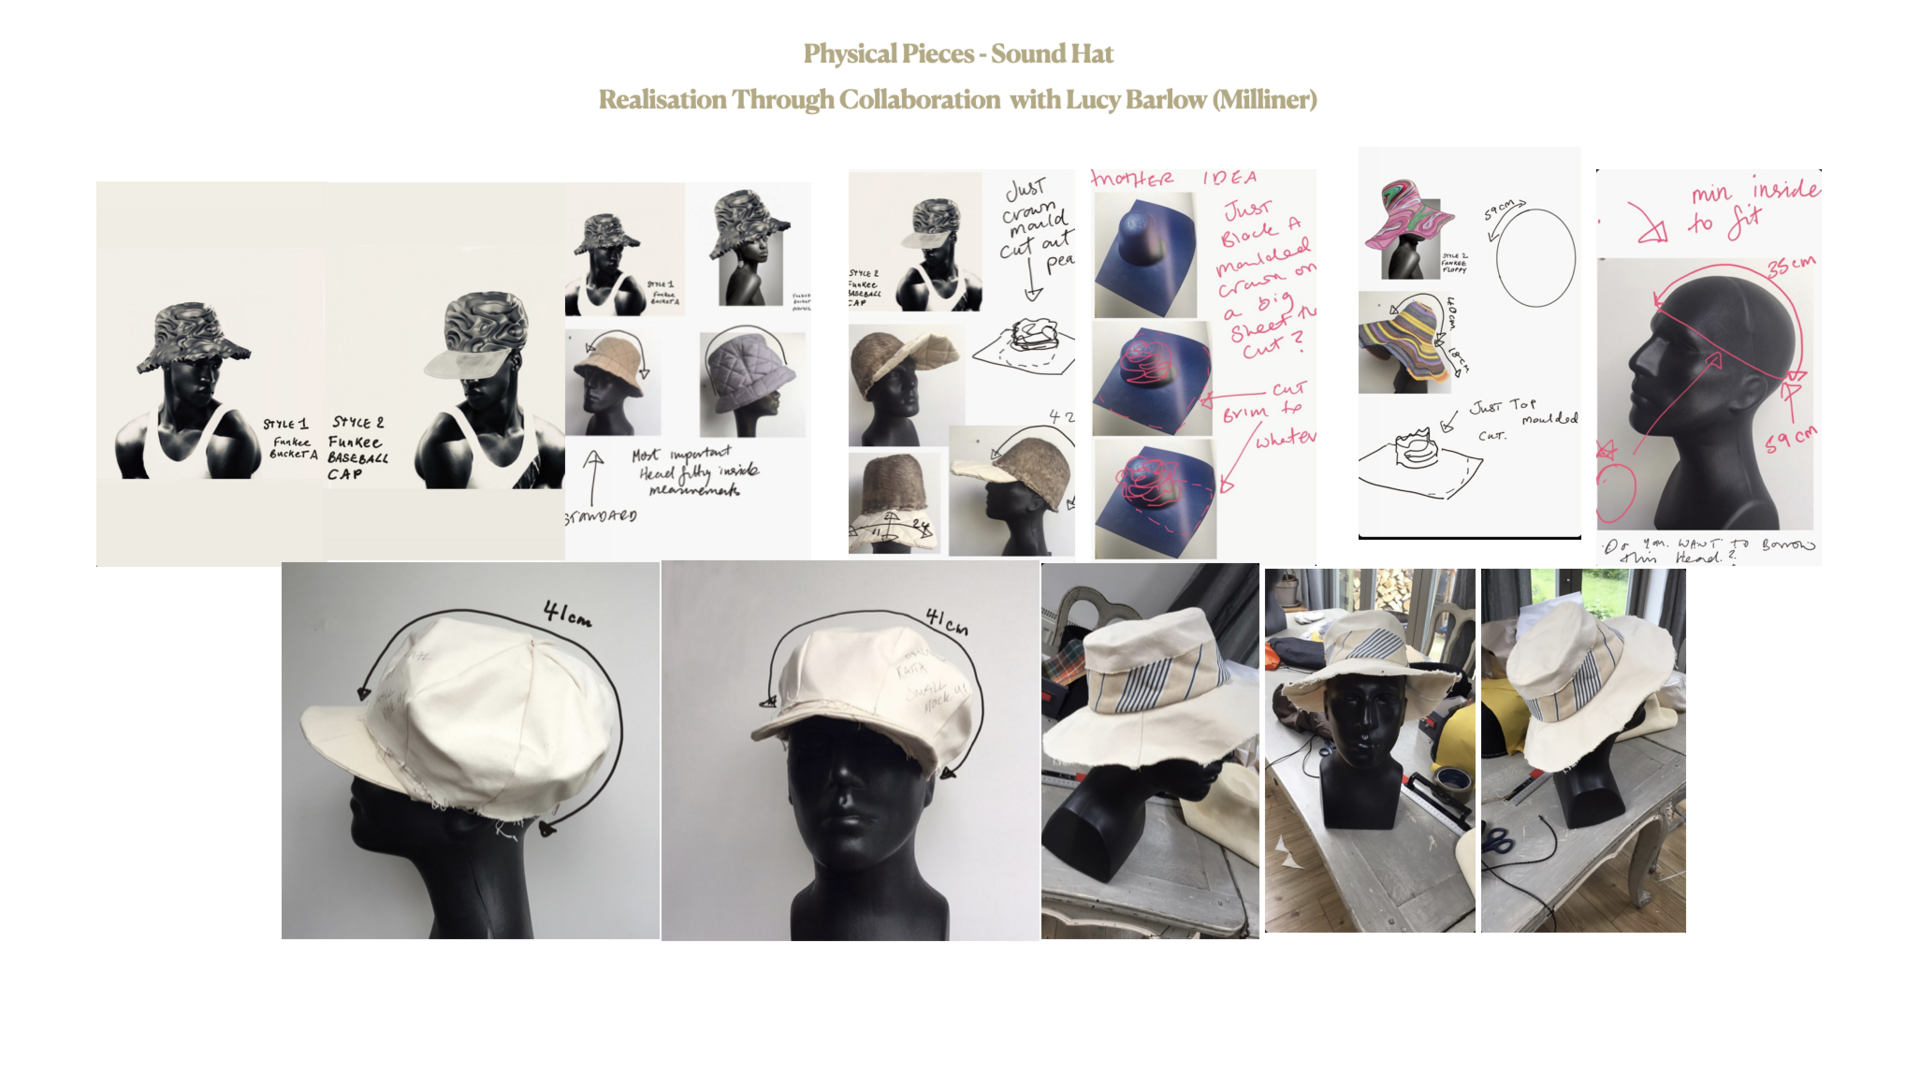 Collaboration with Lucy Barlow (Milliner)